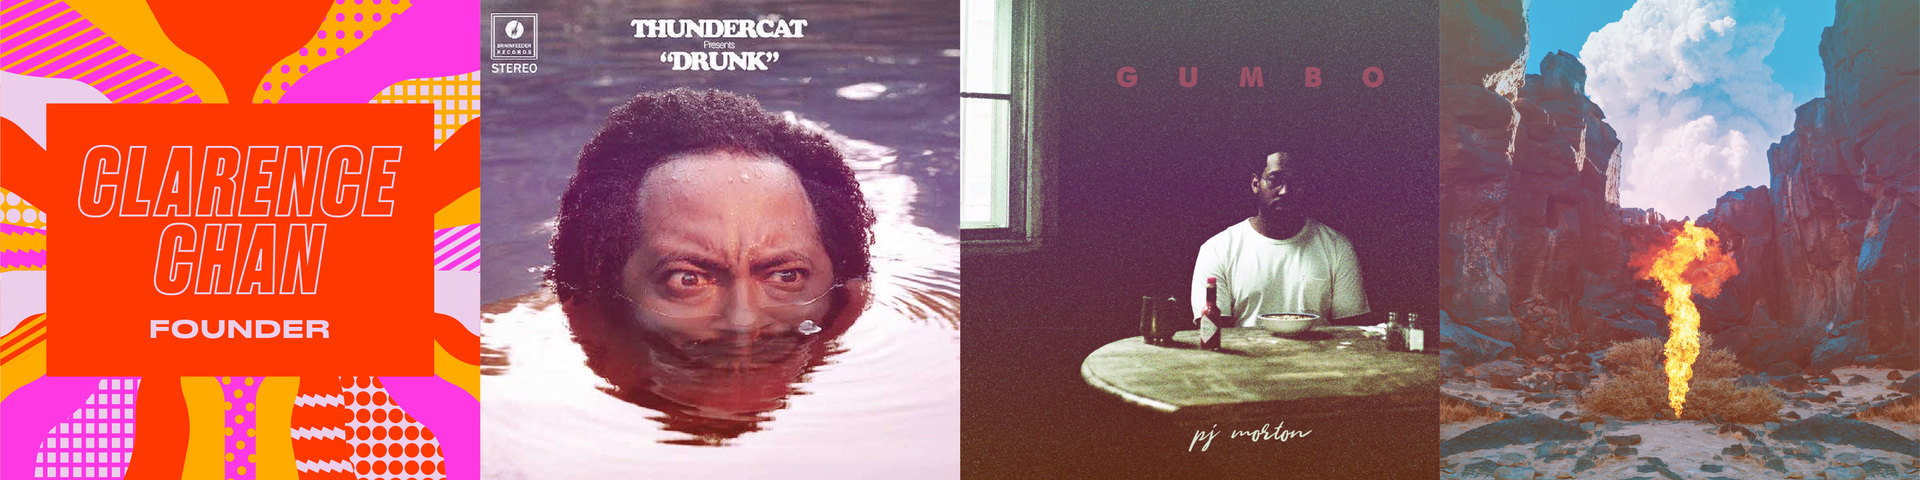 thundercat, year end list, album of the year, 2017, maroon 5, bonobo